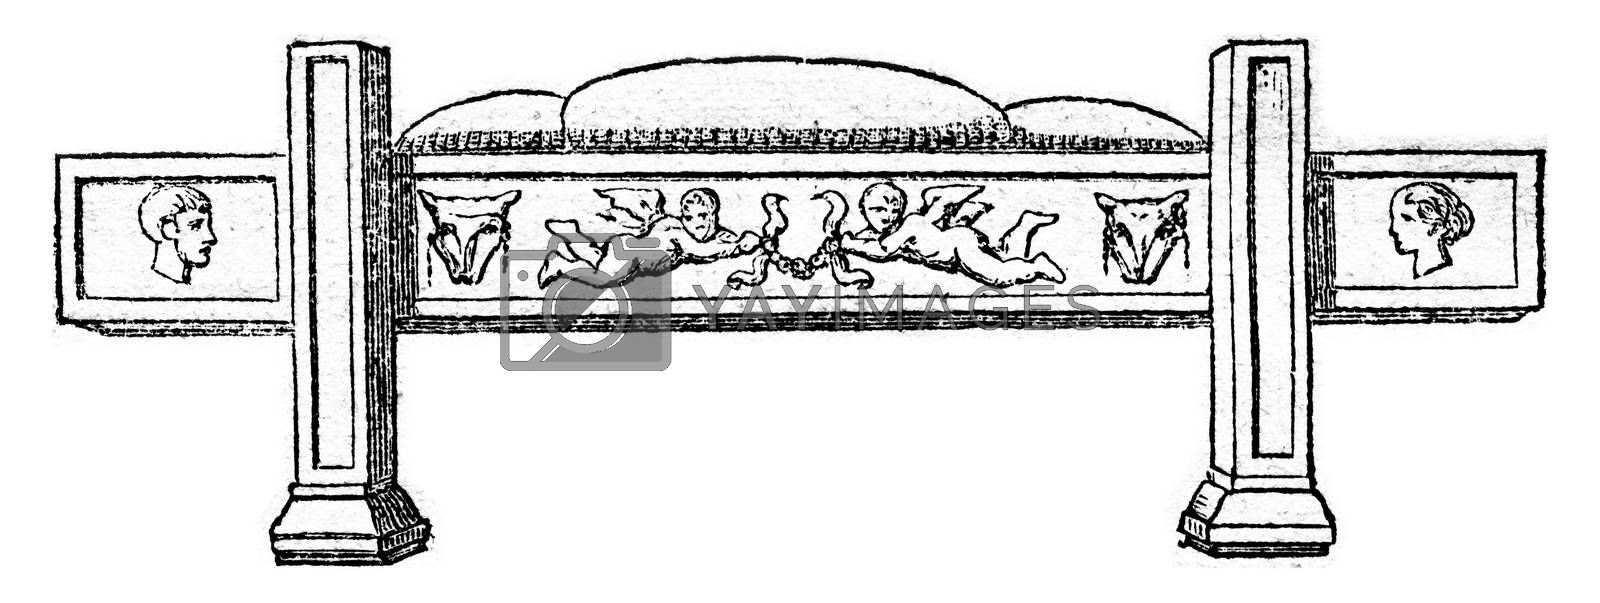 Funeral bed, after a Roman bas relief, vintage engraving. by Morphart